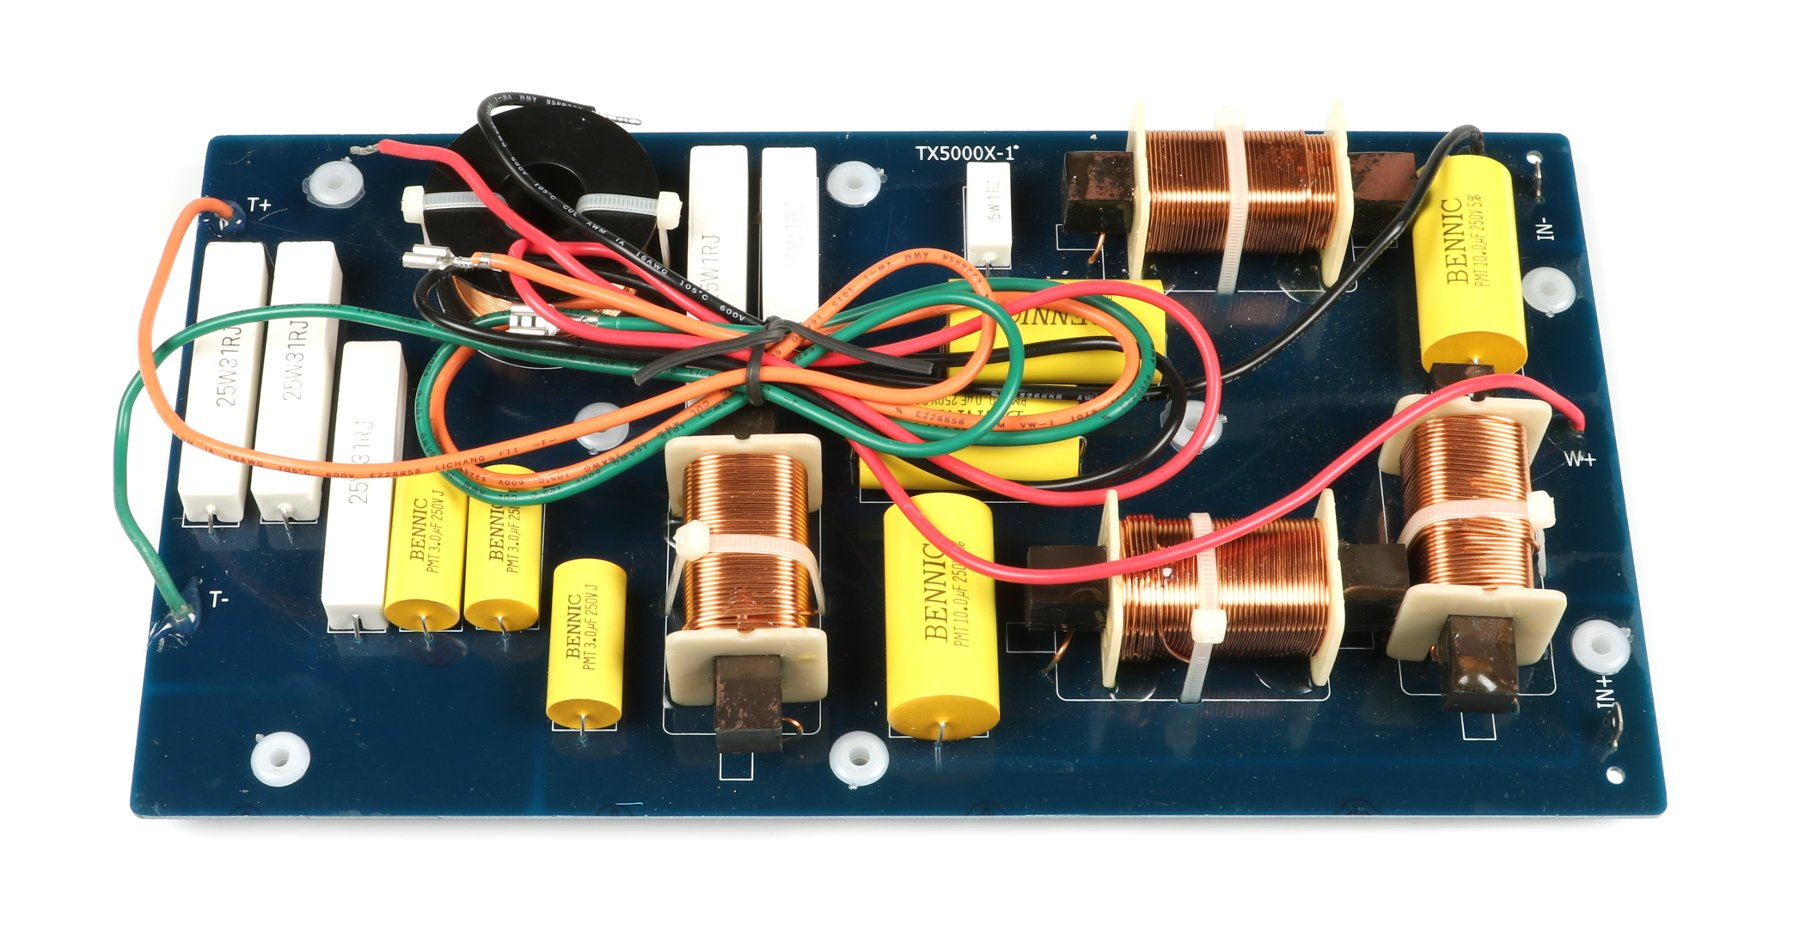 Bag End T5000X-1 Crossover Network for TA15C and TA5000 T5000X-1